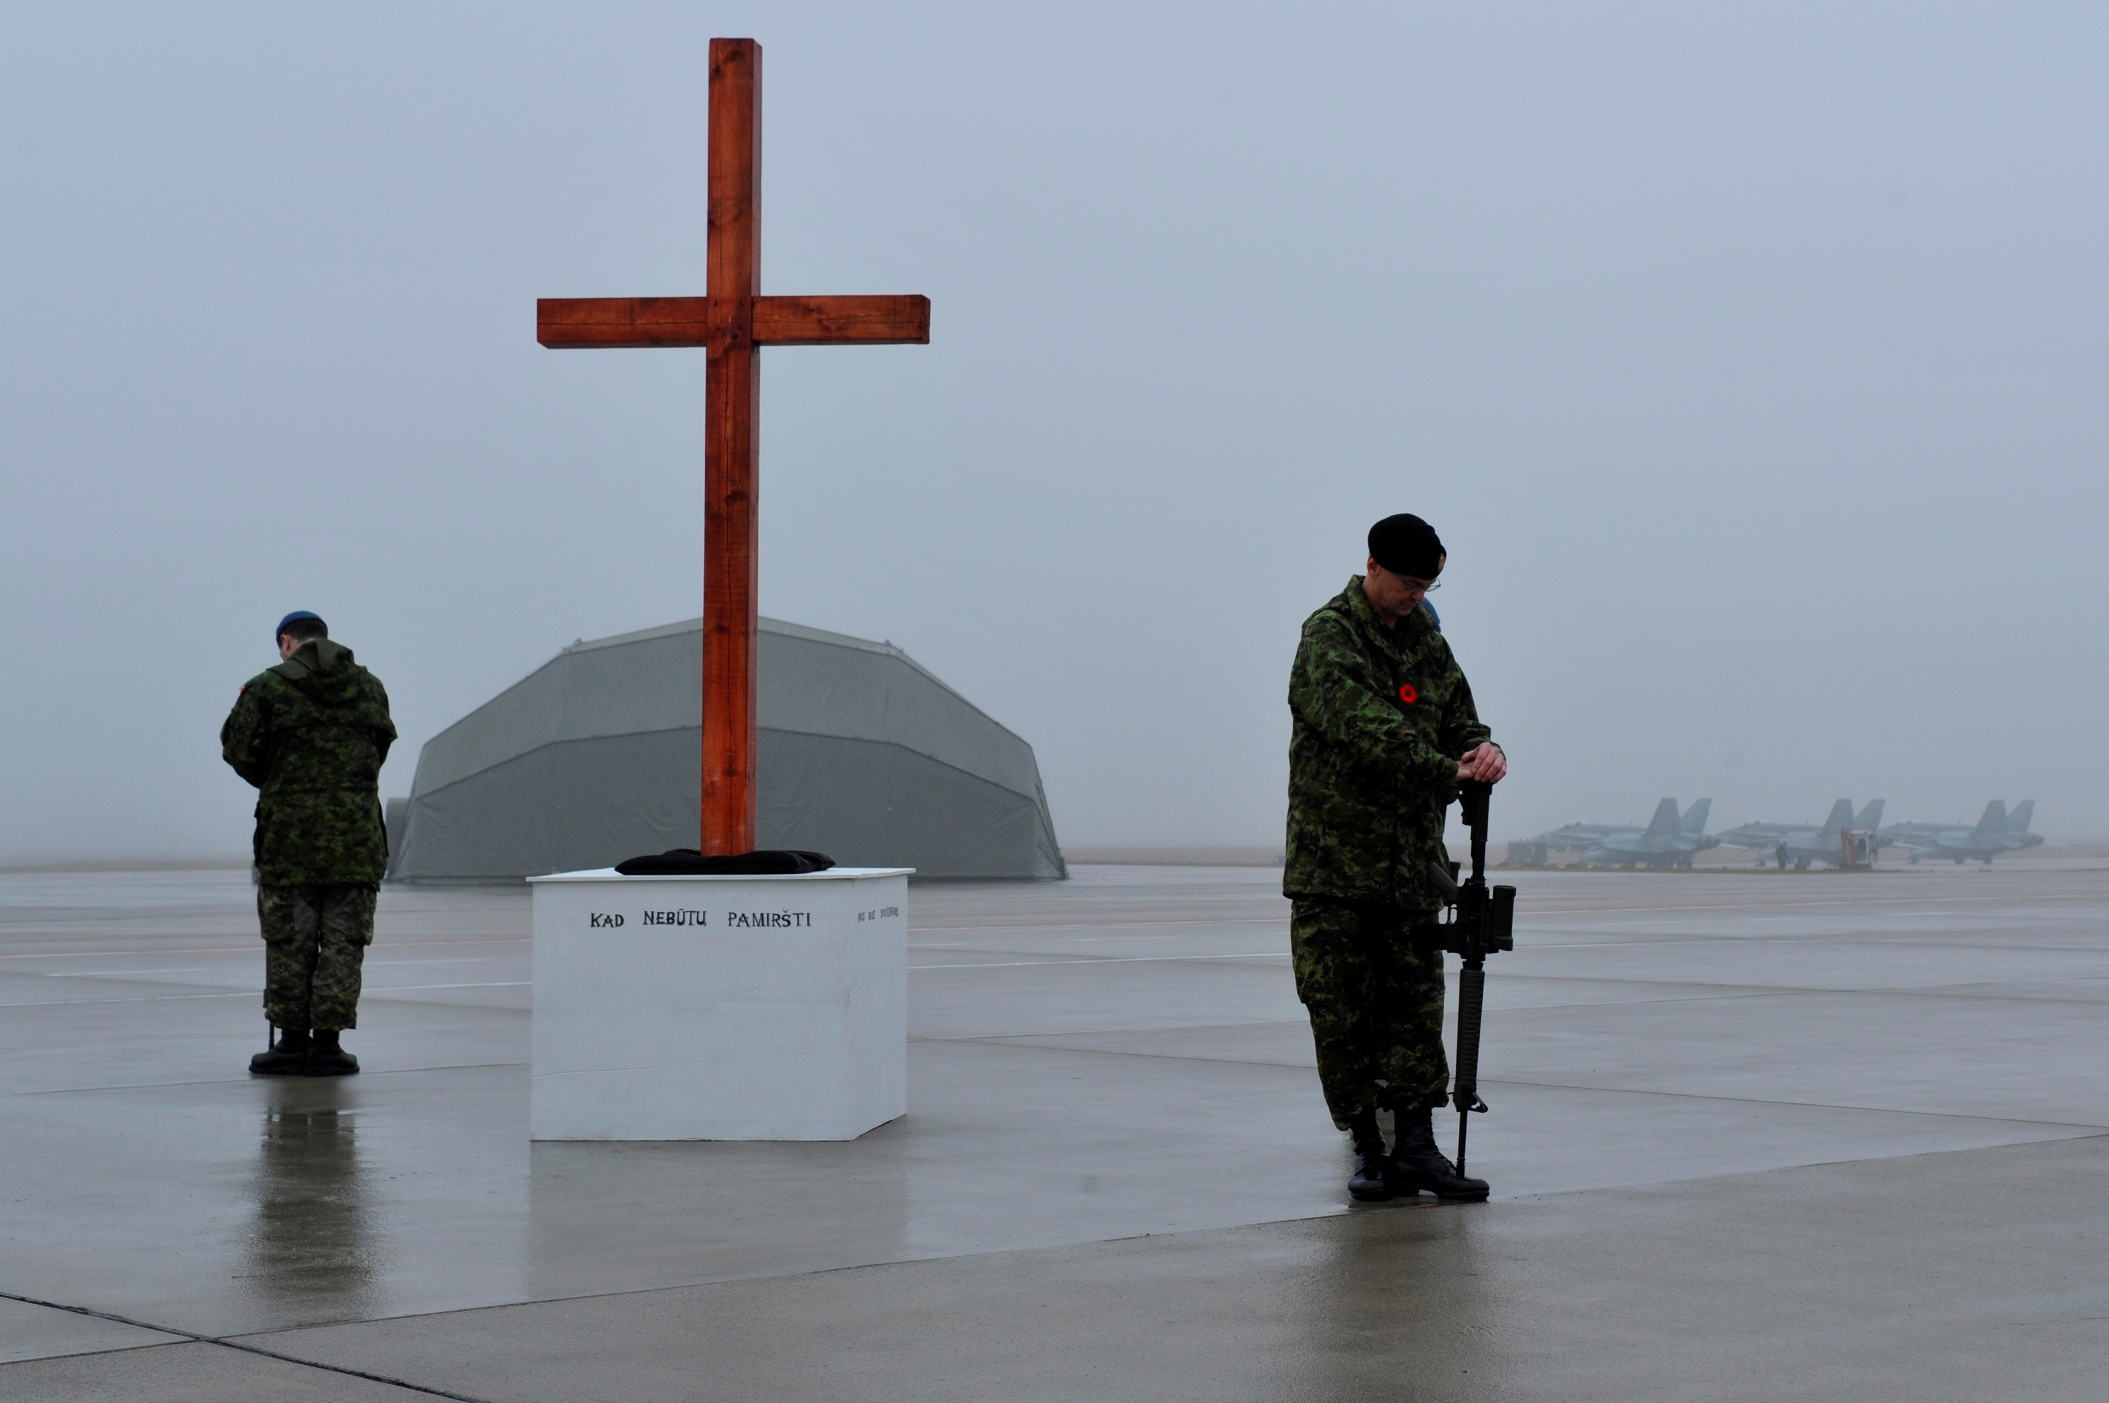 At Šiauliai Air Base in Lithuania, Canadian Air Task Force members deployed on Operation Reassurance stand sentry during the November 11, 2014, Remembrance Day ceremony. PHOTO: Air Task Force - Operation Reassurance, DND